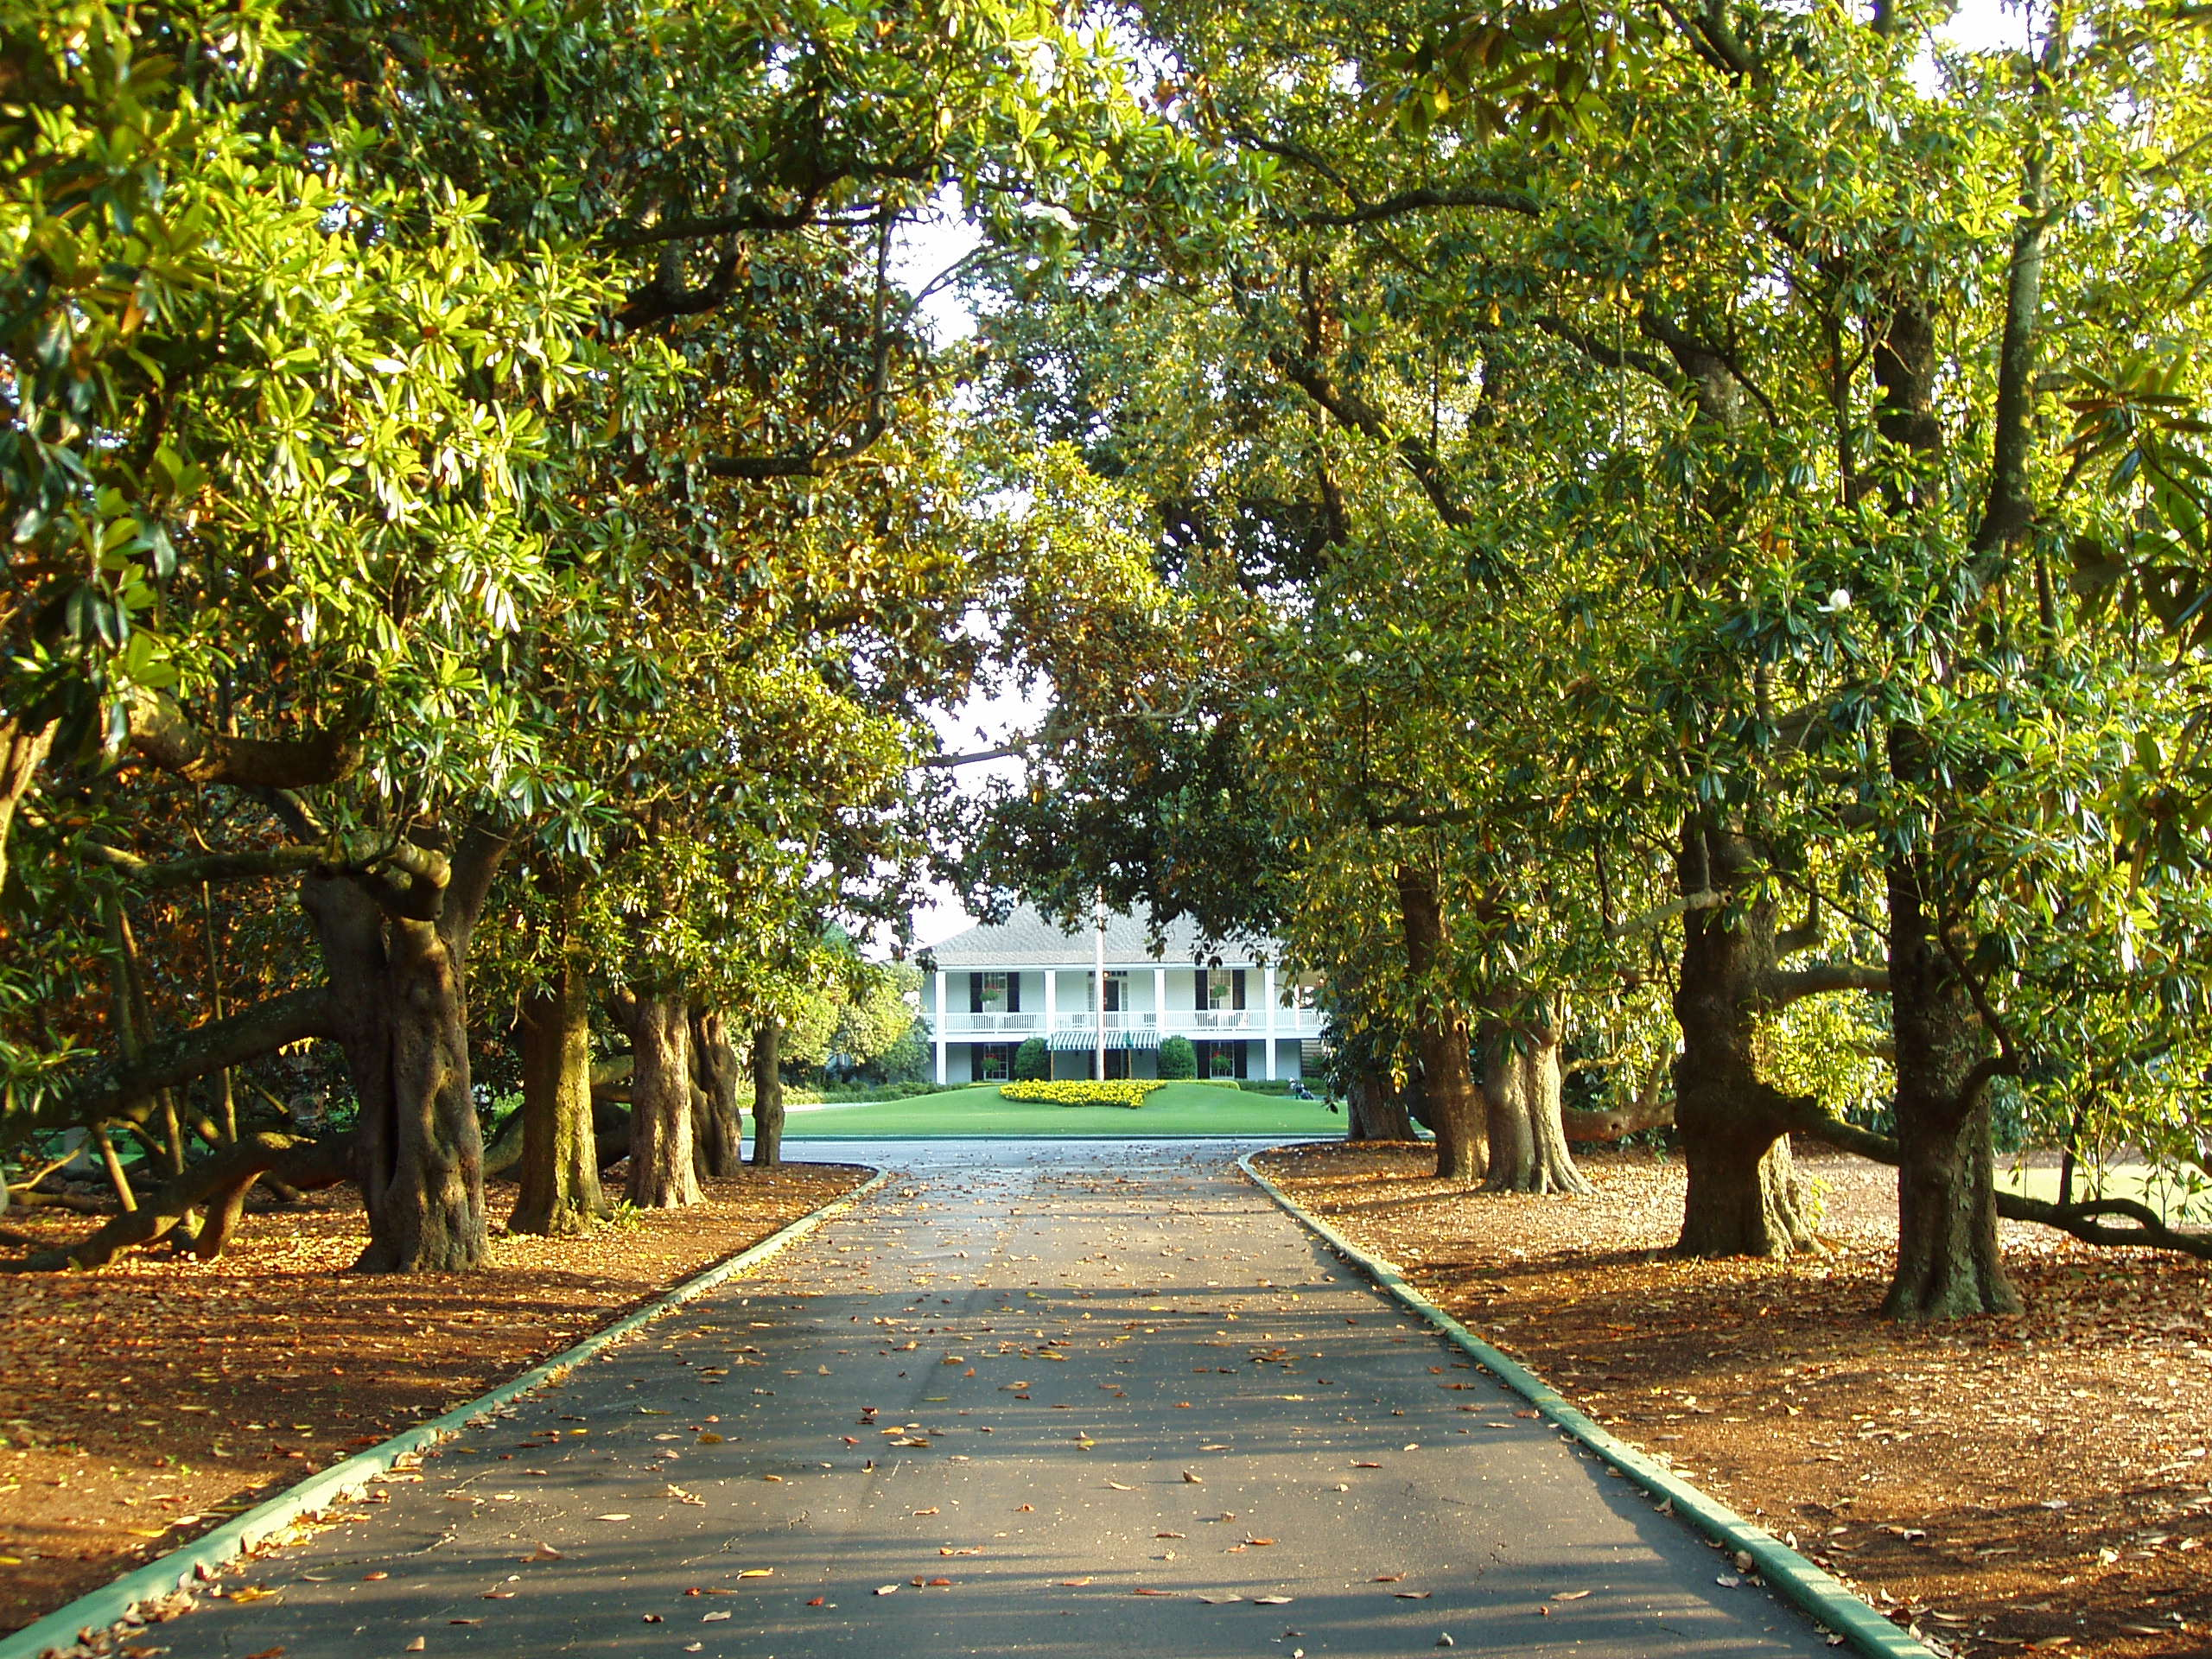 Caddying at augusta national a journey through orlando s best golf